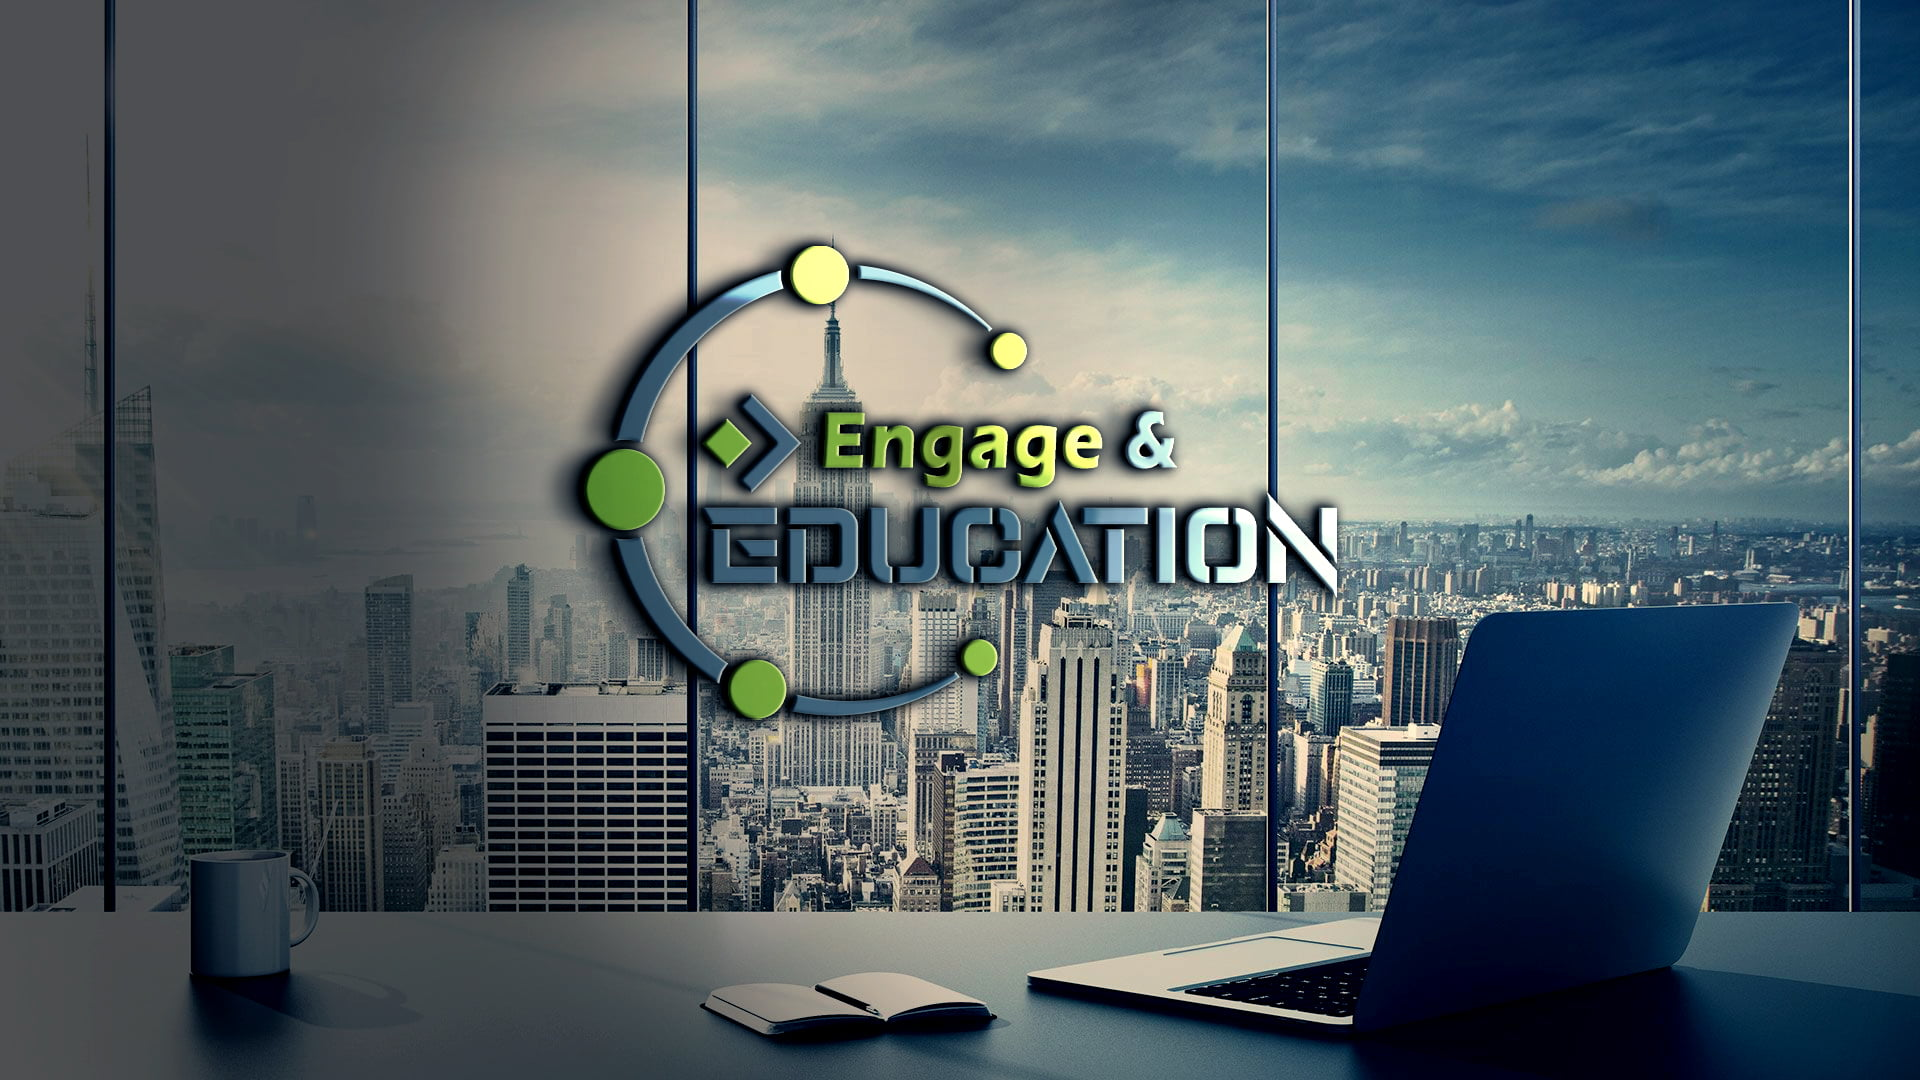 Engage in Education Logo Concept on Transparent wall